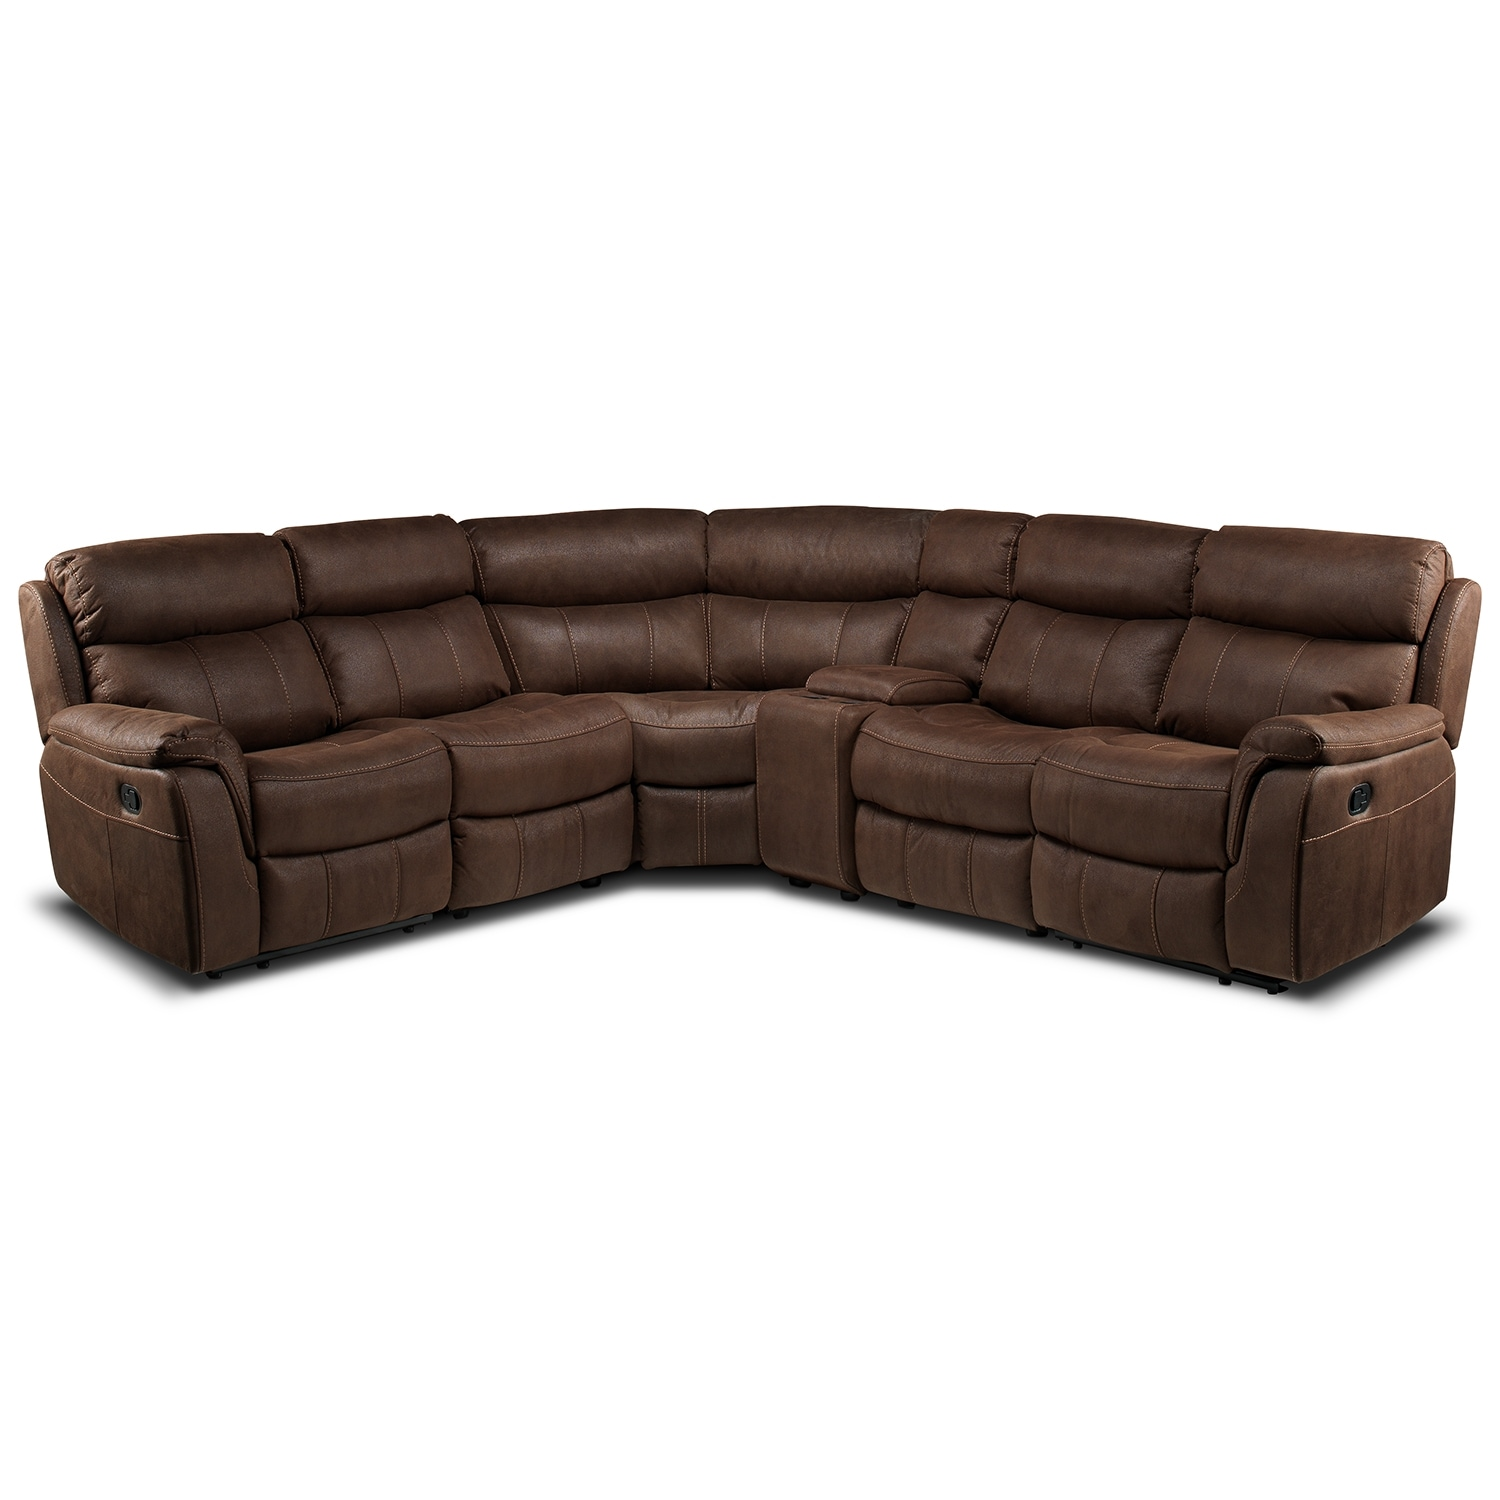 [Vaquero 6 Pc. Sectional]